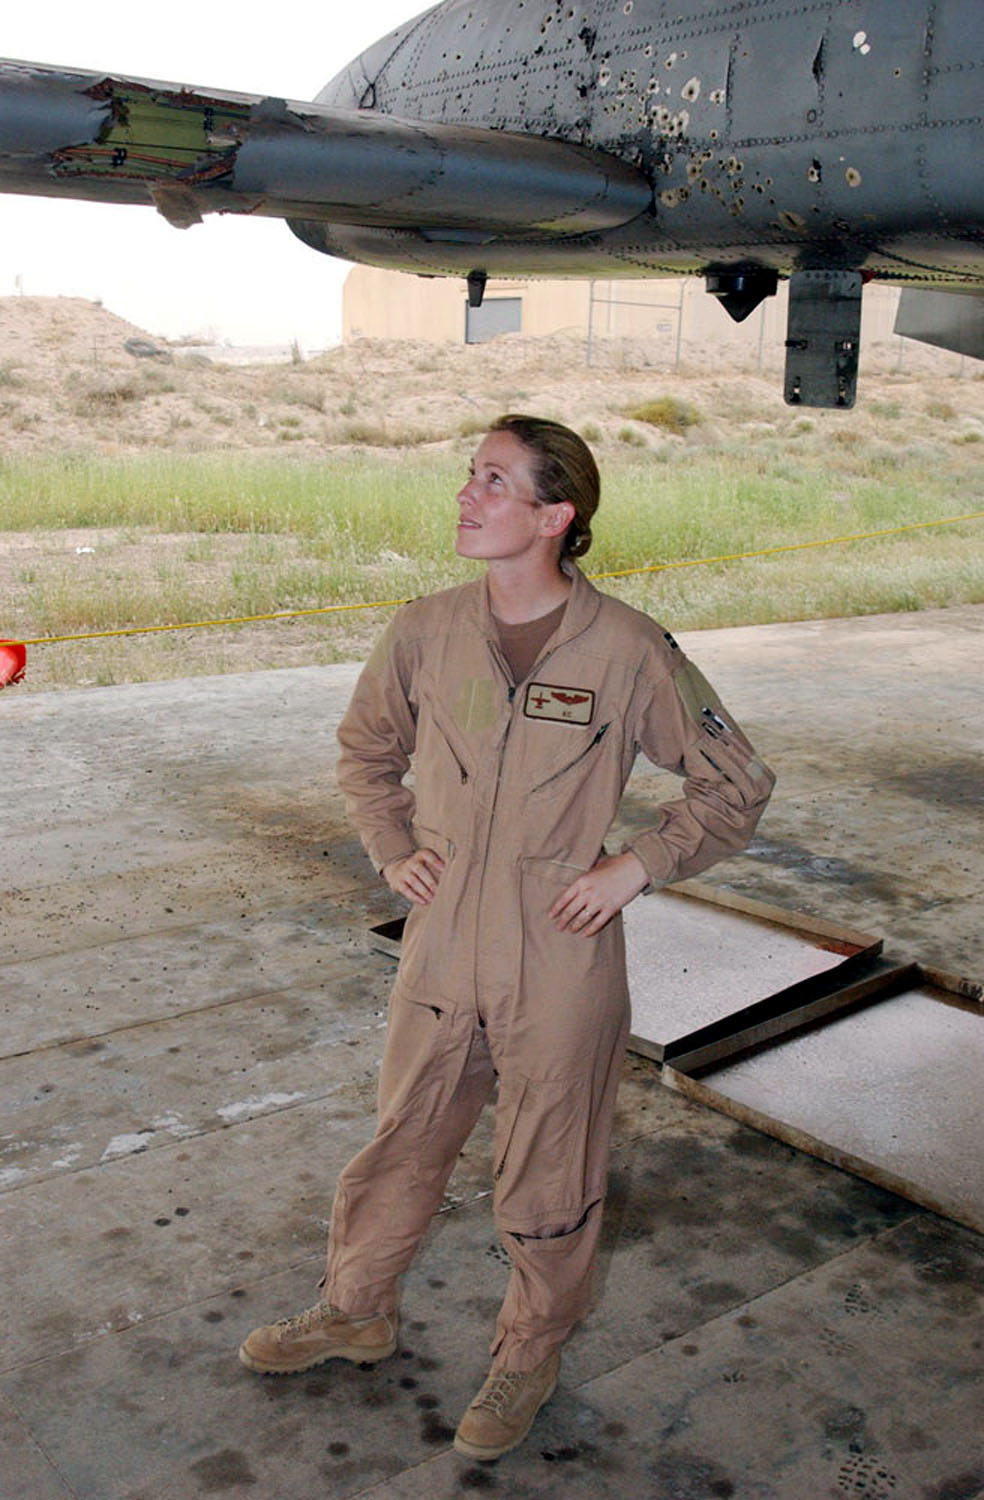 The Story of Kim Campbell the Heroic Female A-10 Pilot who Landed Her Damaged Warthog Using Only 'Cranks and Cables'